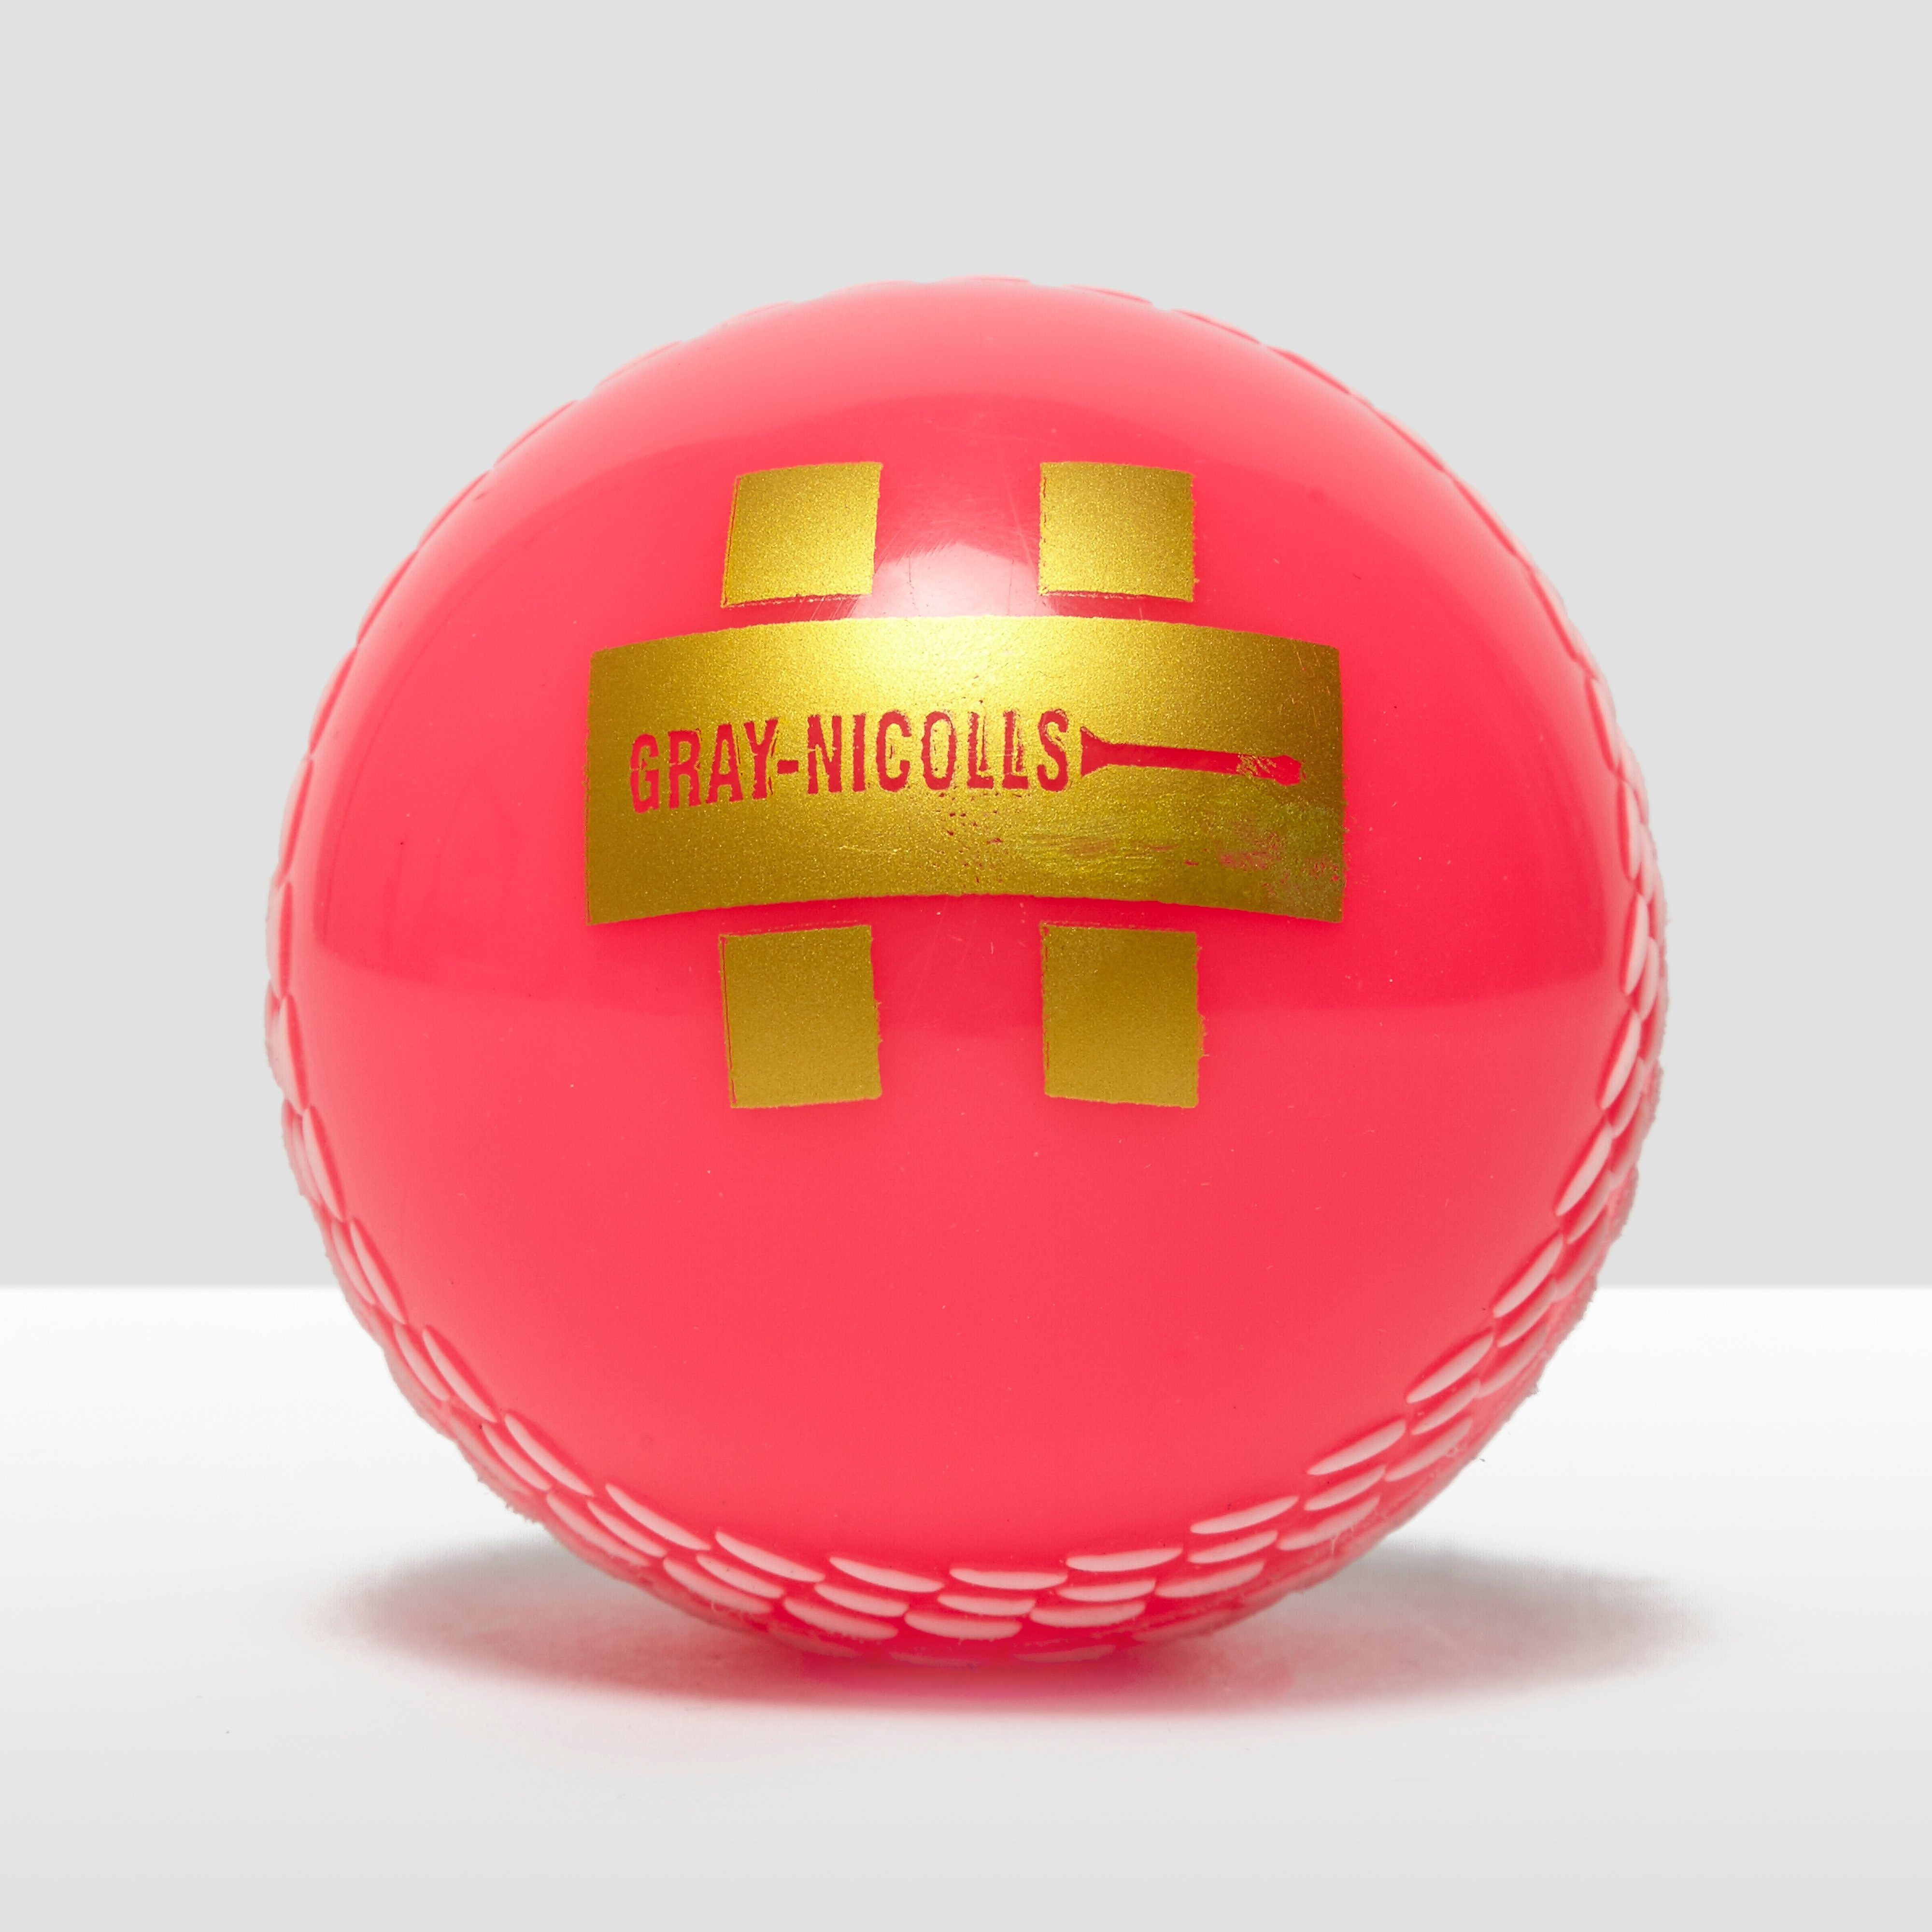 Gray Nicolls GRAY-NICOLLS Velocity Cricket Ball